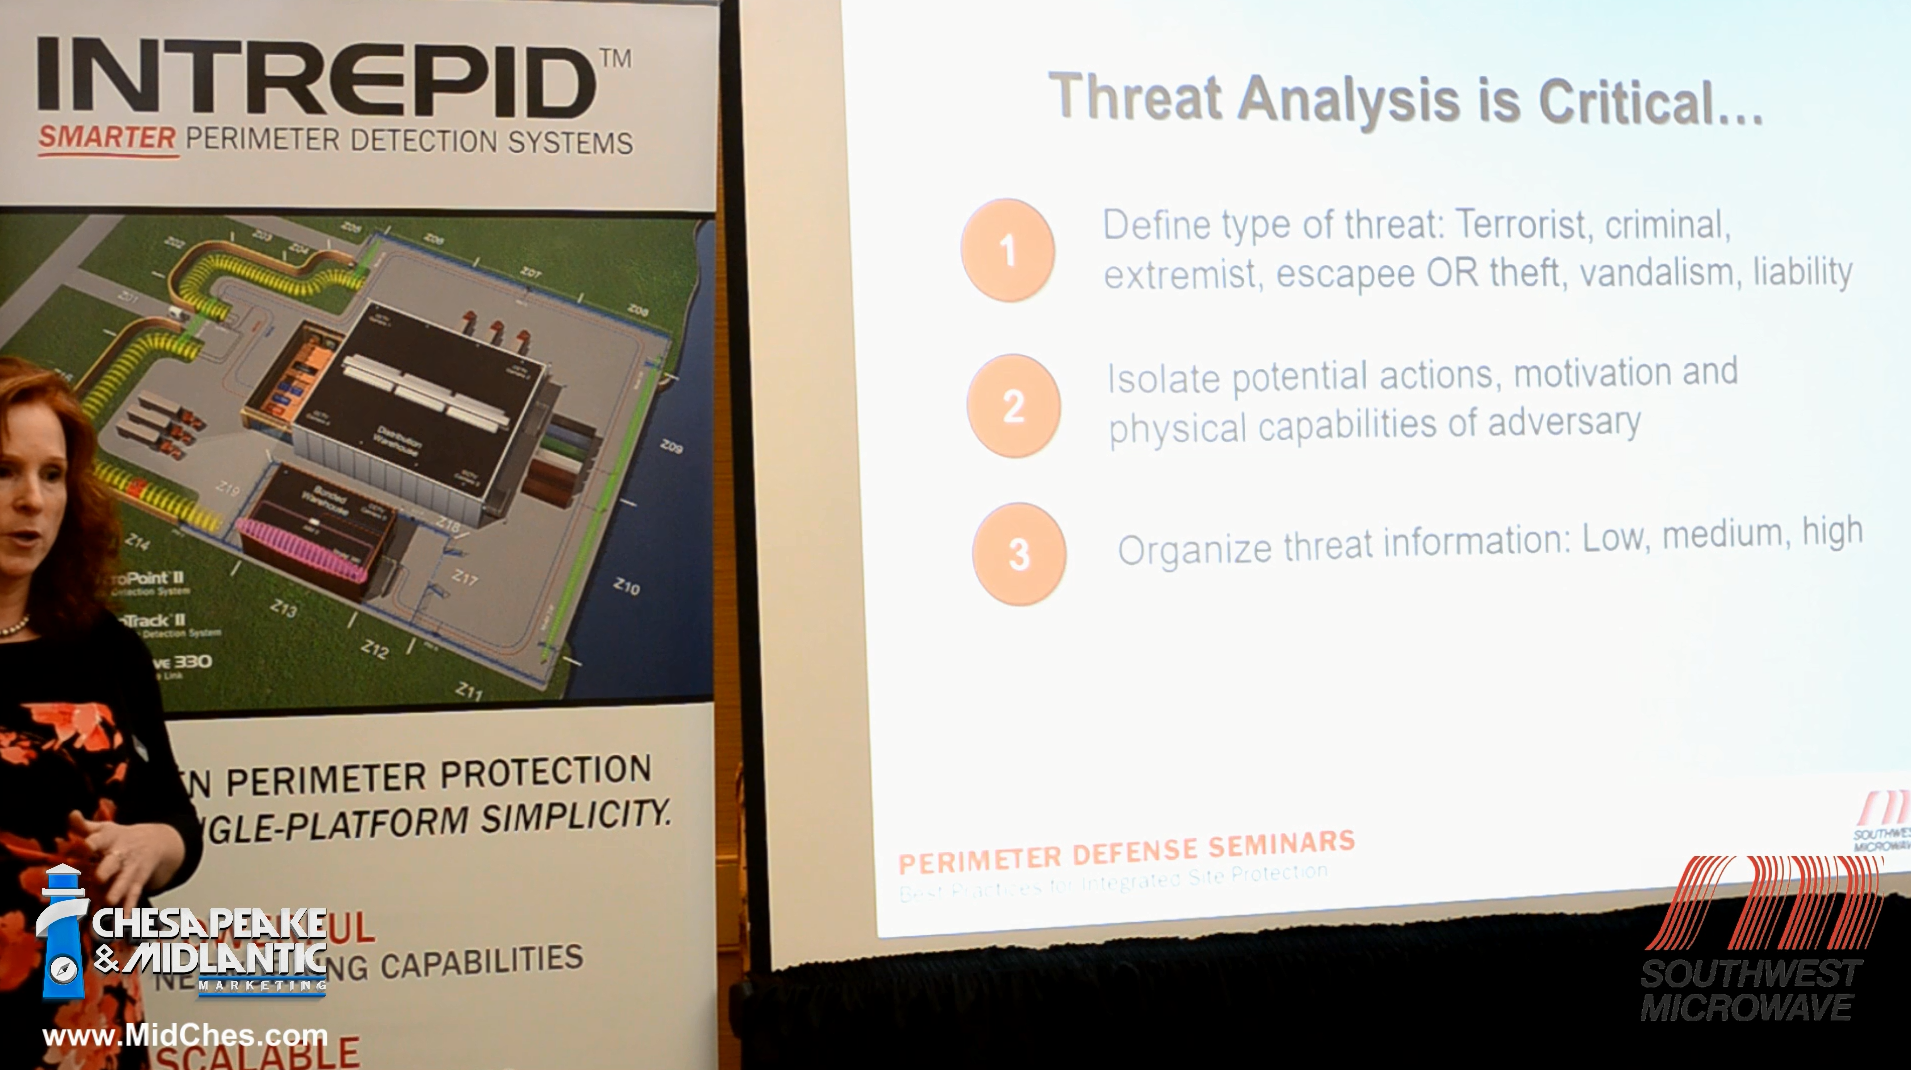 Perimeter Defense Seminar Series Overview thumbnail 2.png